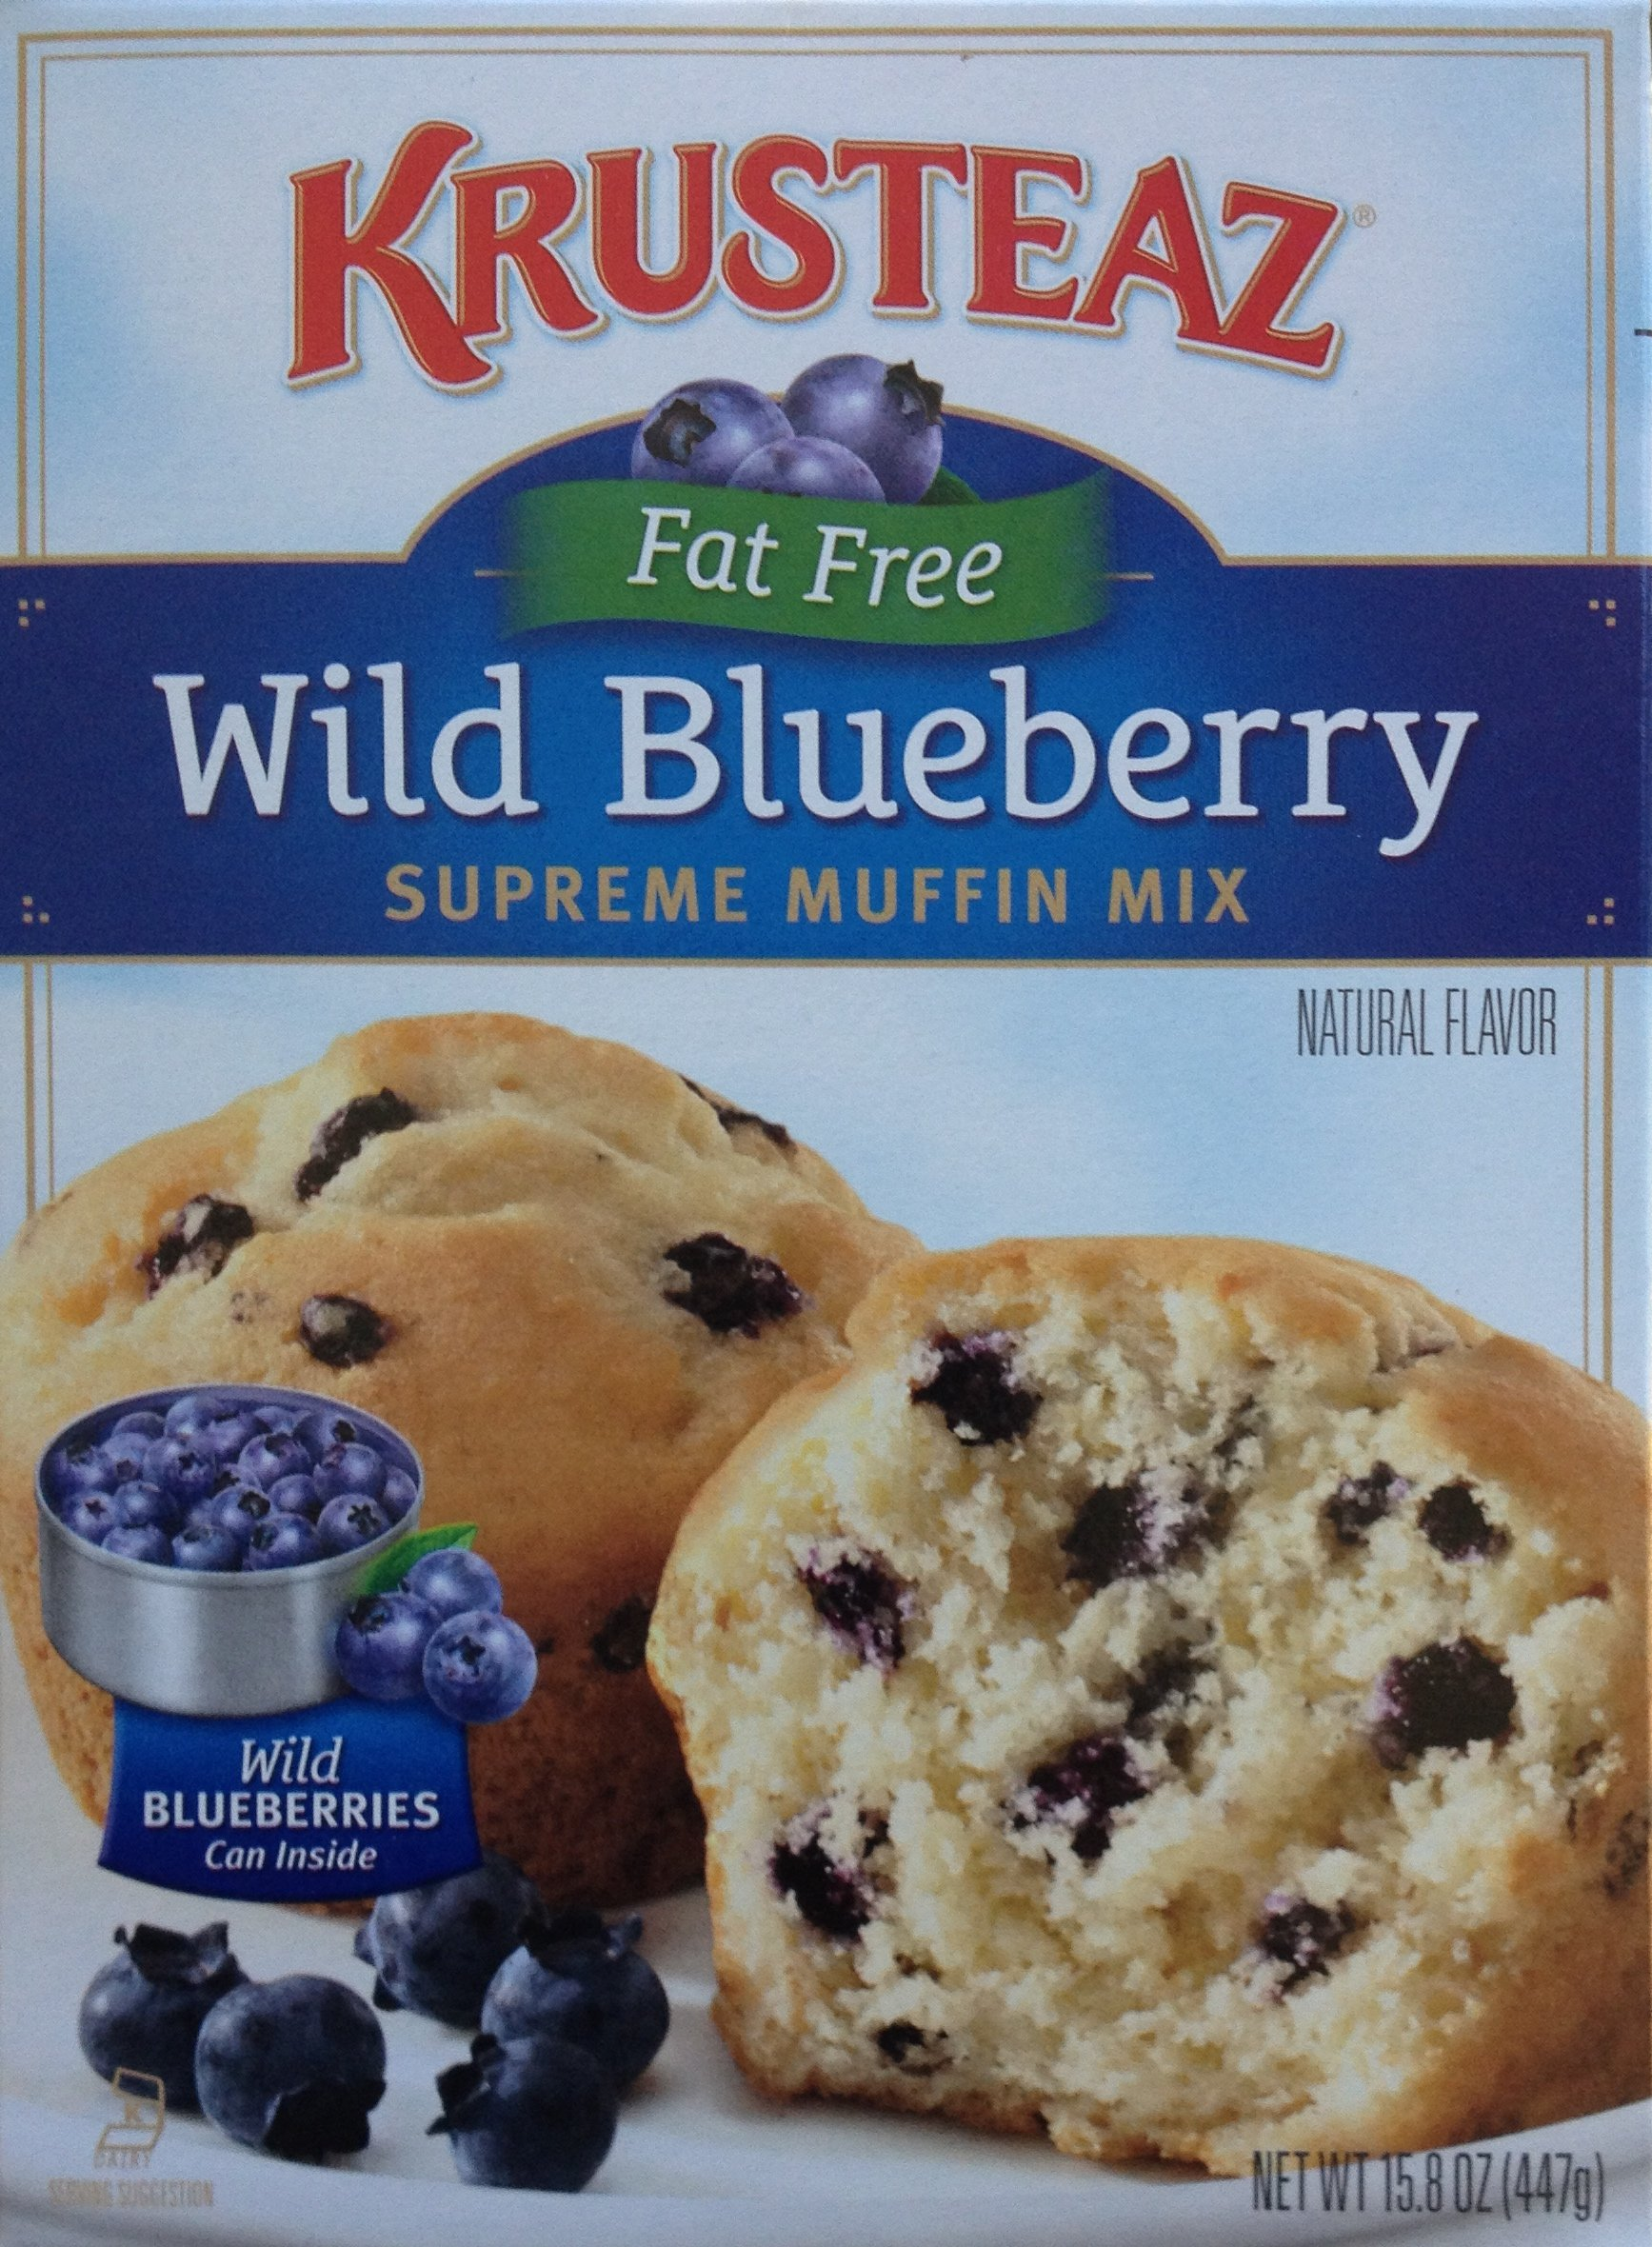 Krusteaz, Fat Free, Wild Blueberry Muffin Mix, 15.8oz Box (Pack of 6)